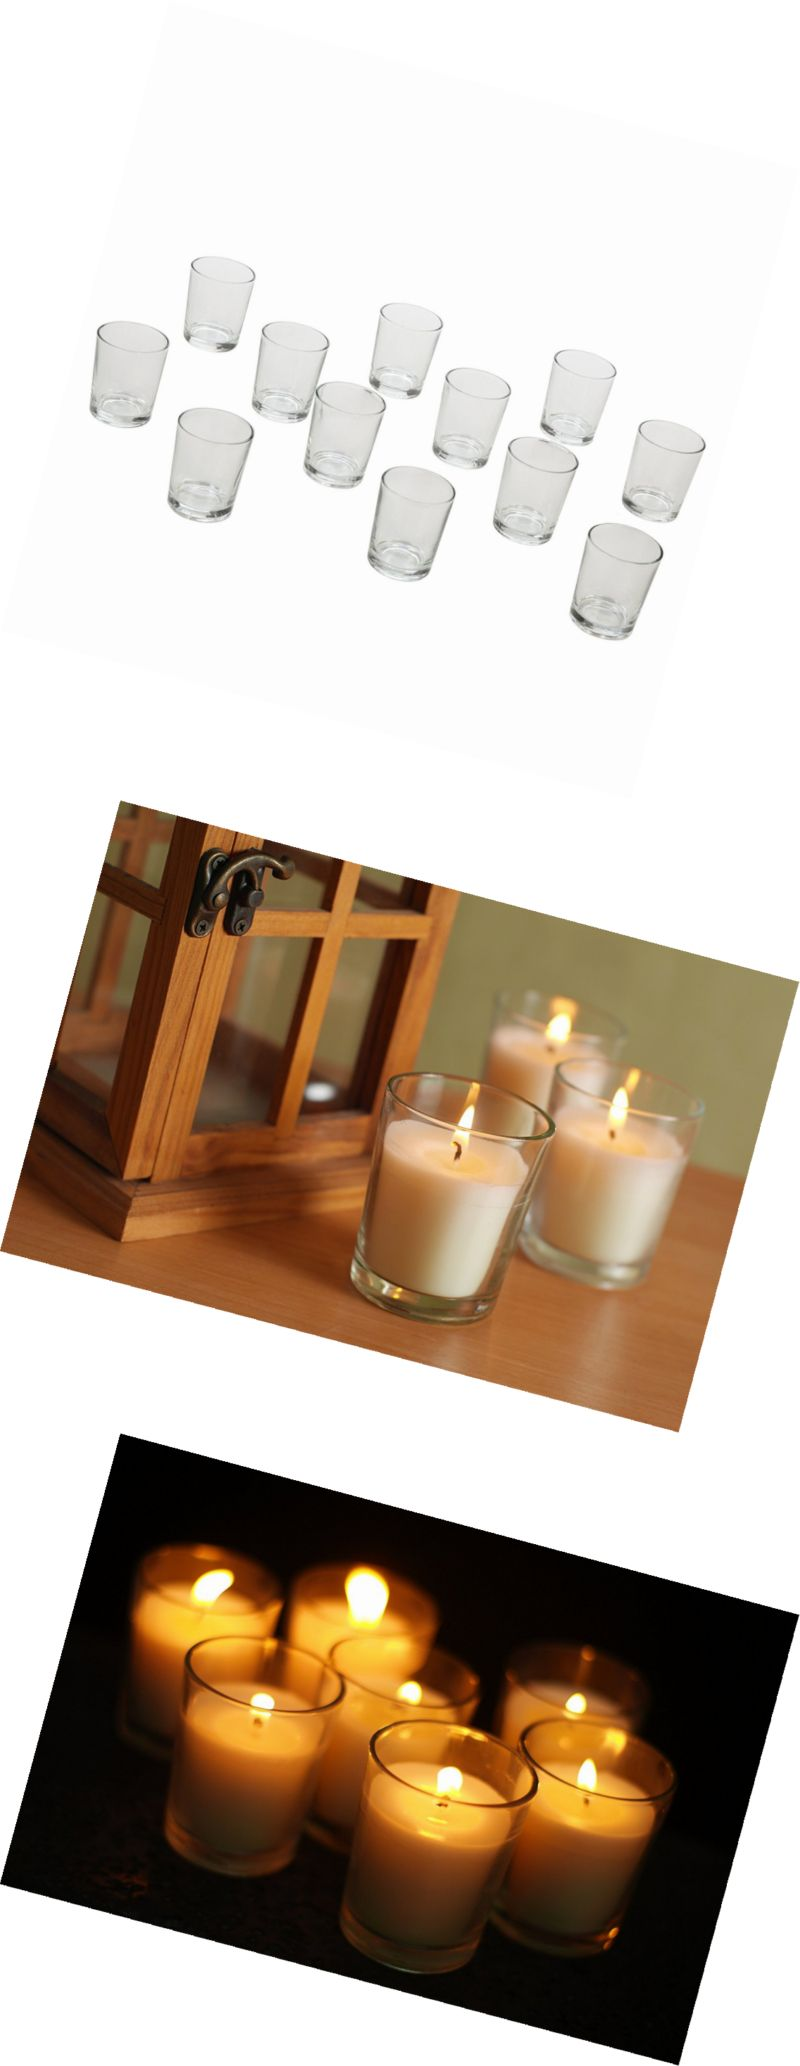 Candle holders and accessories hosley s set of crystal